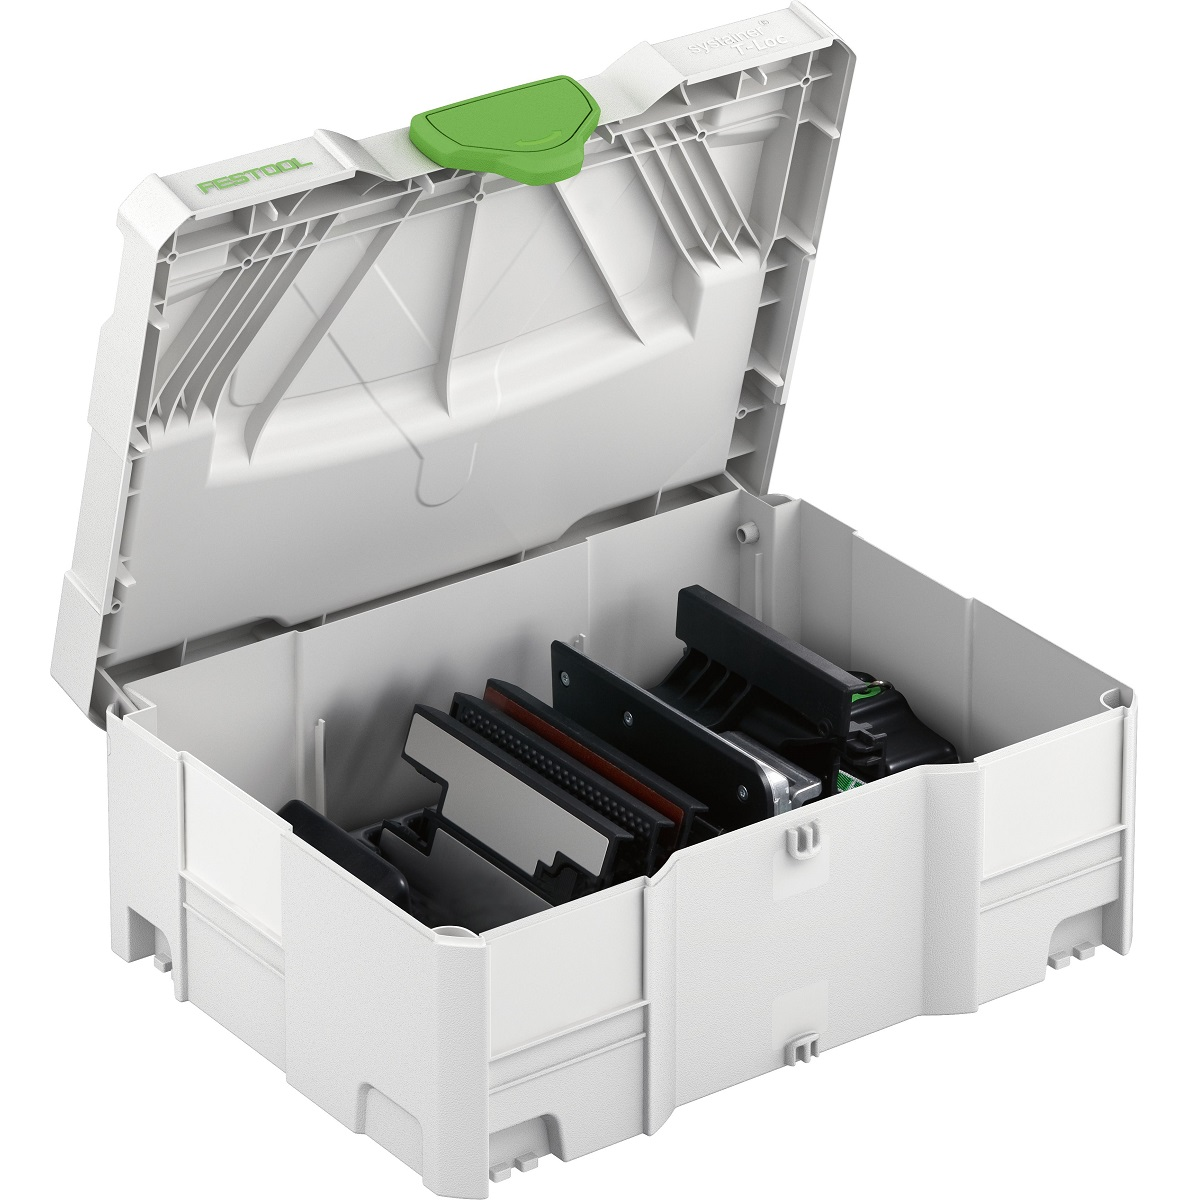 FESTOOL 497709 SYS-ZH-PS420 SYSTAINER JIGSAW ACCESSORIES